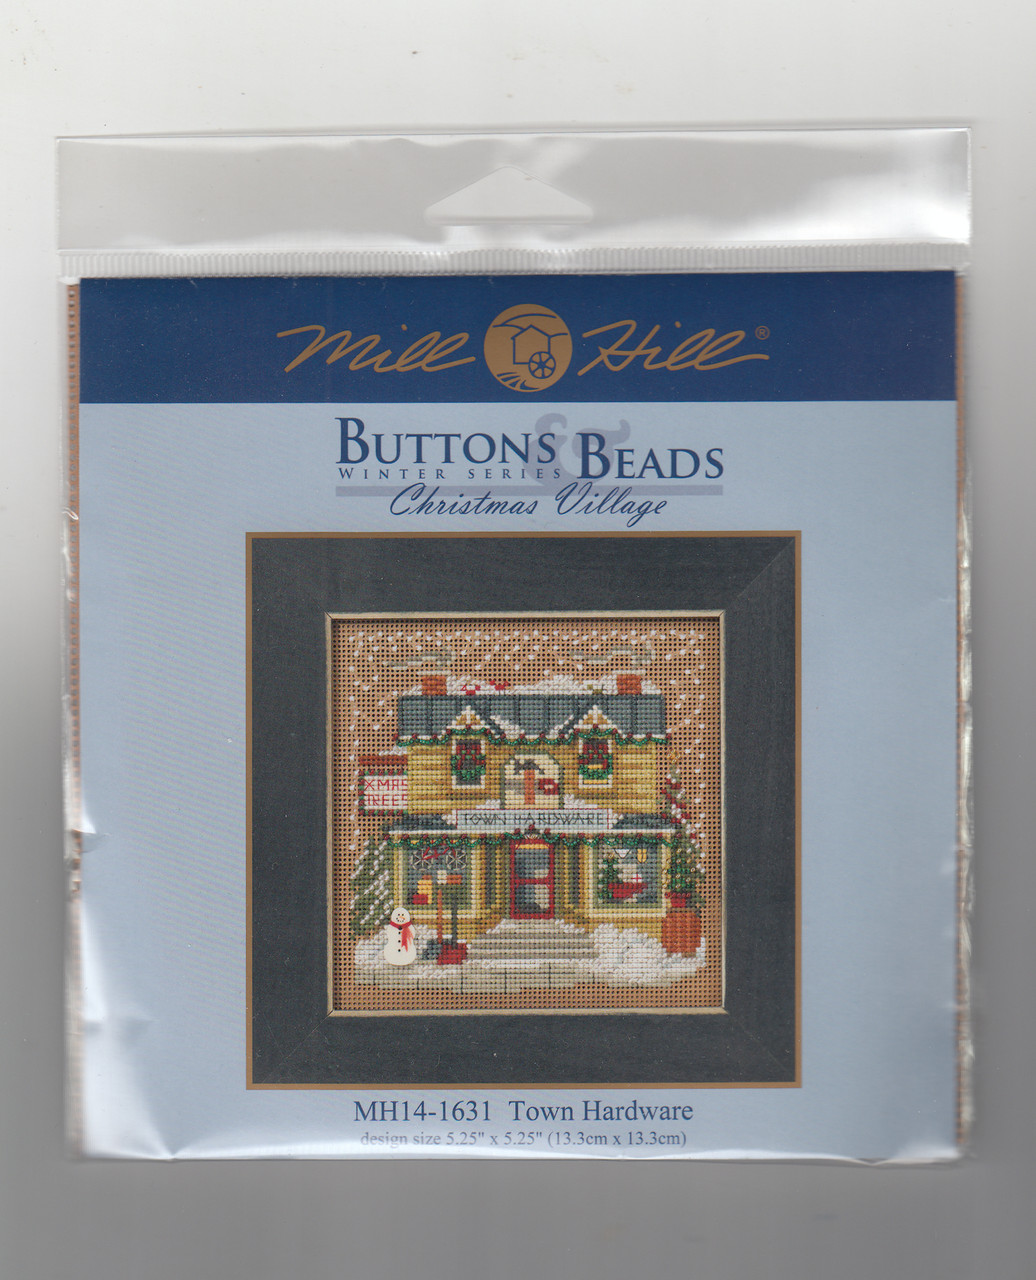 2016 Mill Hill Buttons & Beads Winter Series (Set of 6 Kits)